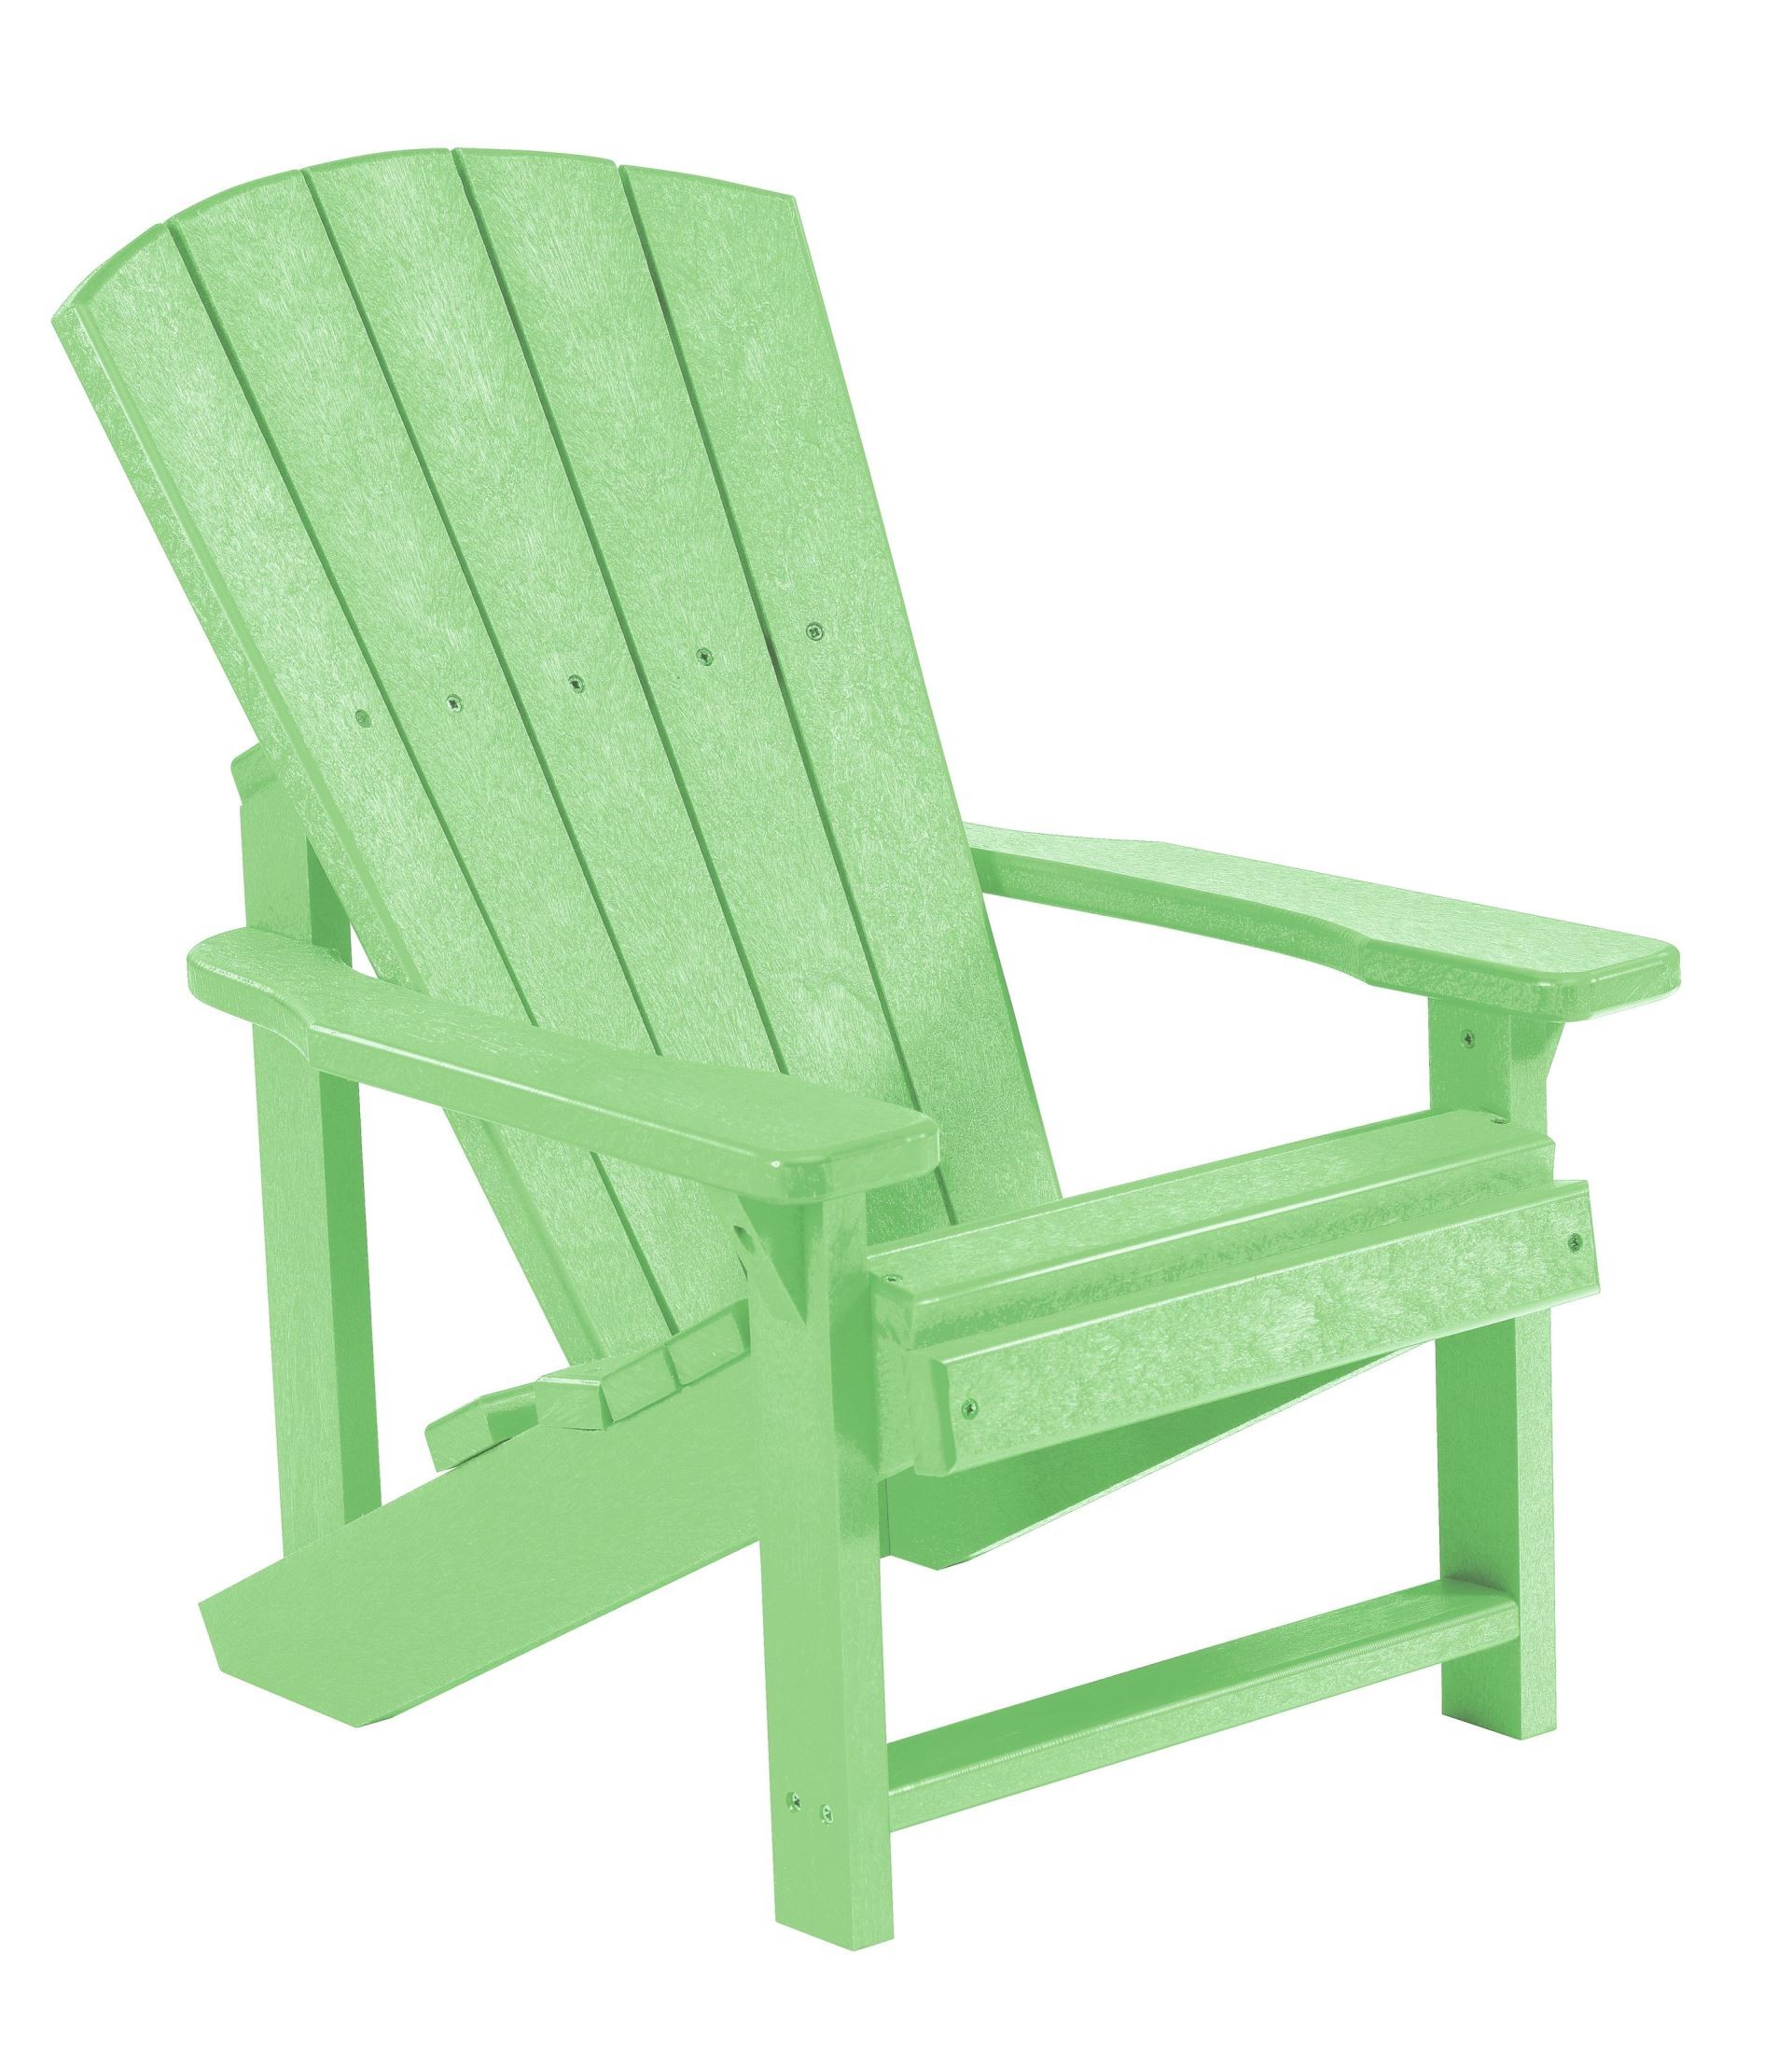 Generations lime green kids adirondack chair from cr plastic c08 15 coleman furniture - Green resin adirondack chairs ...